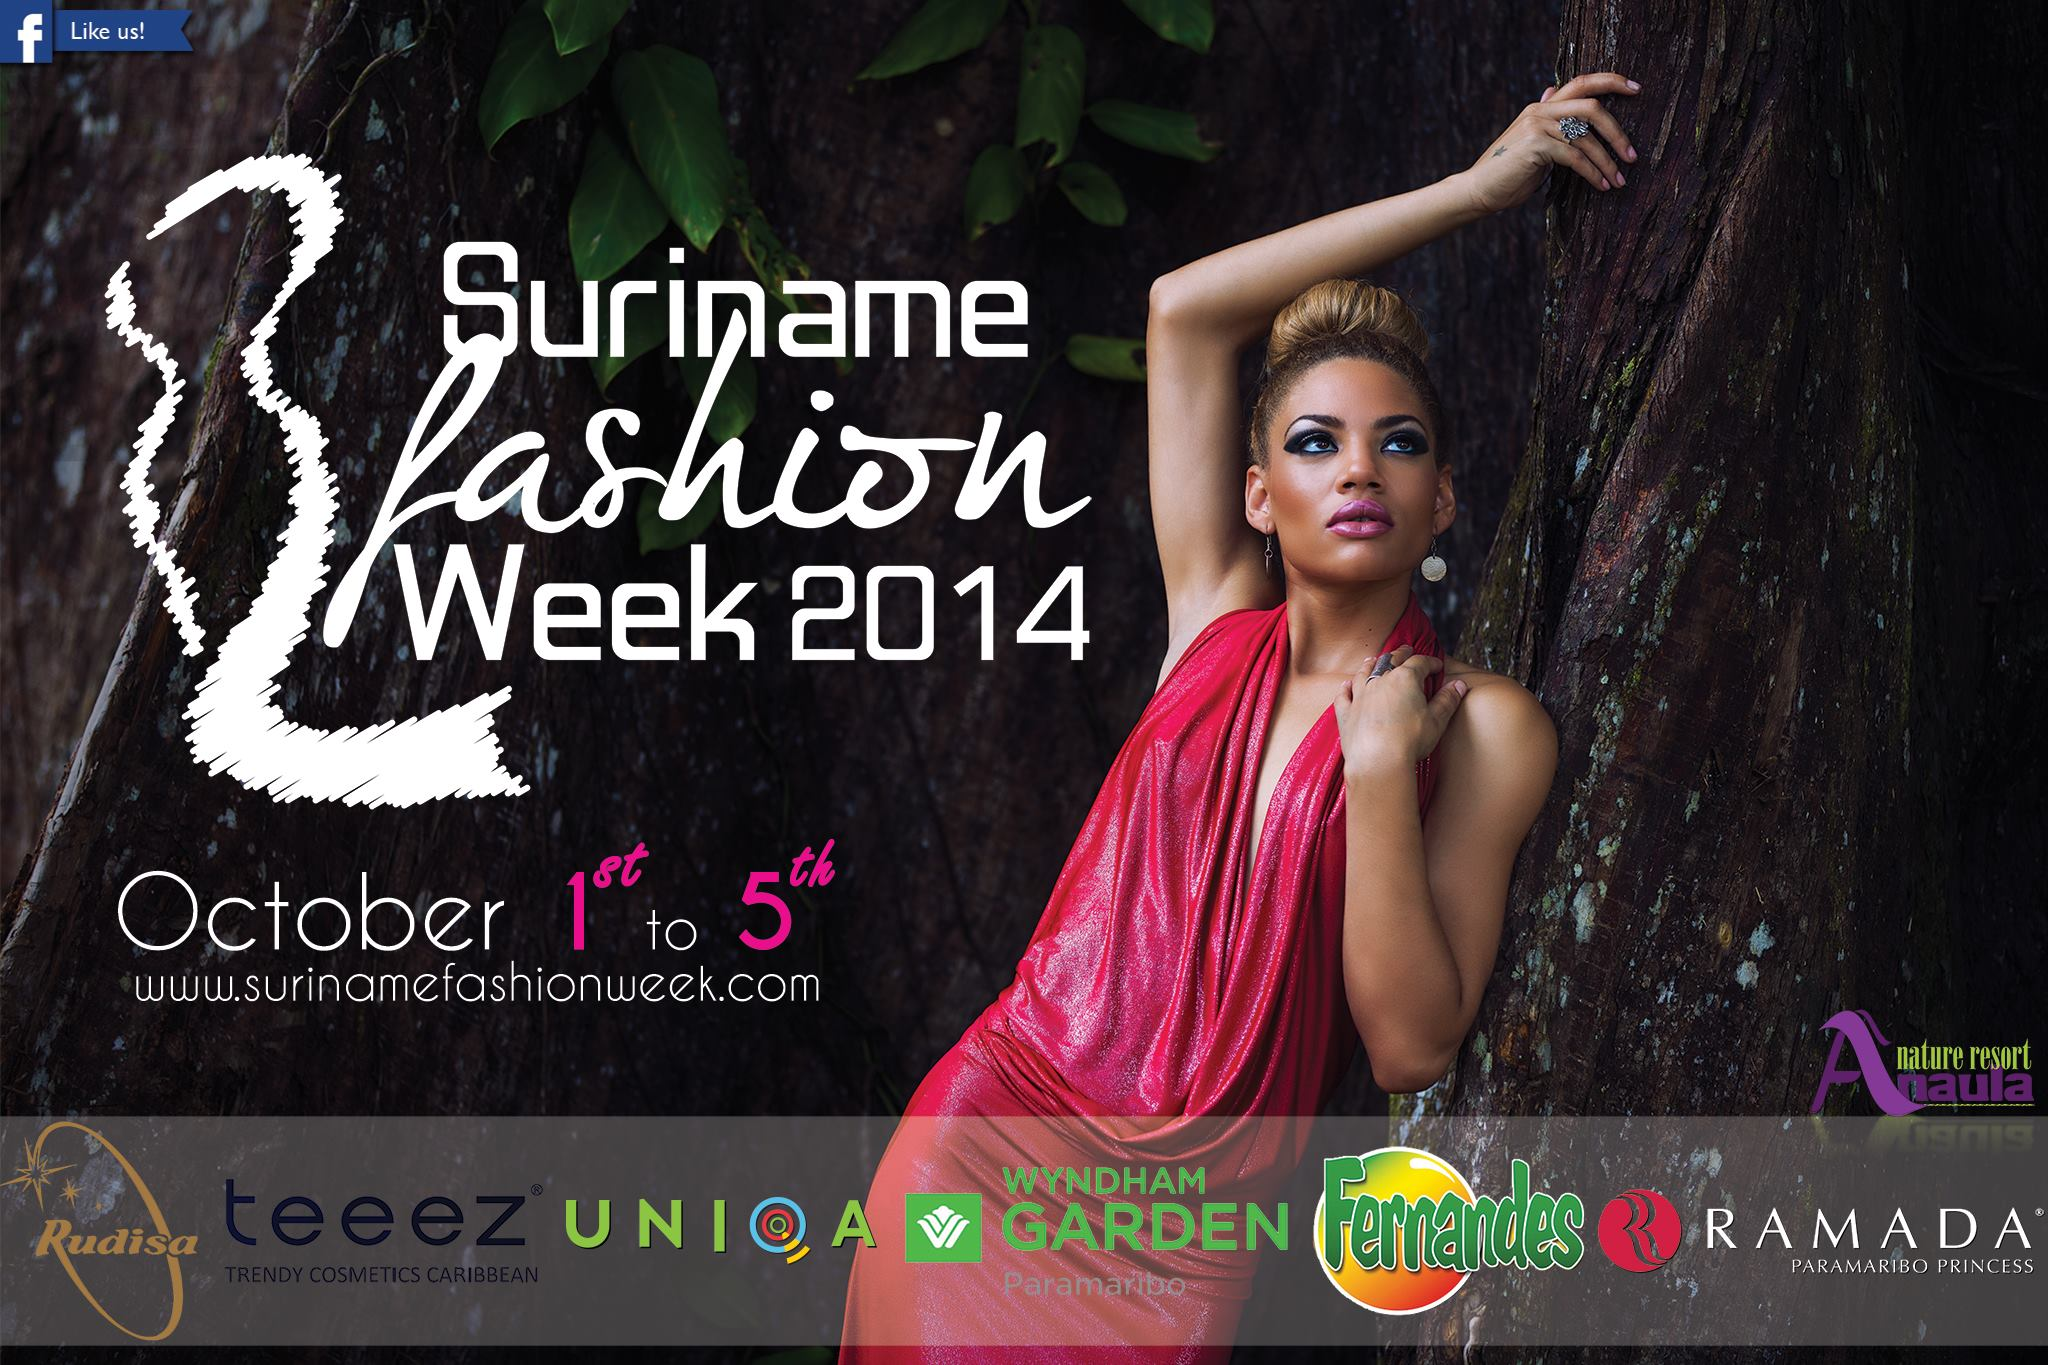 Suriname Fashion Week 2014